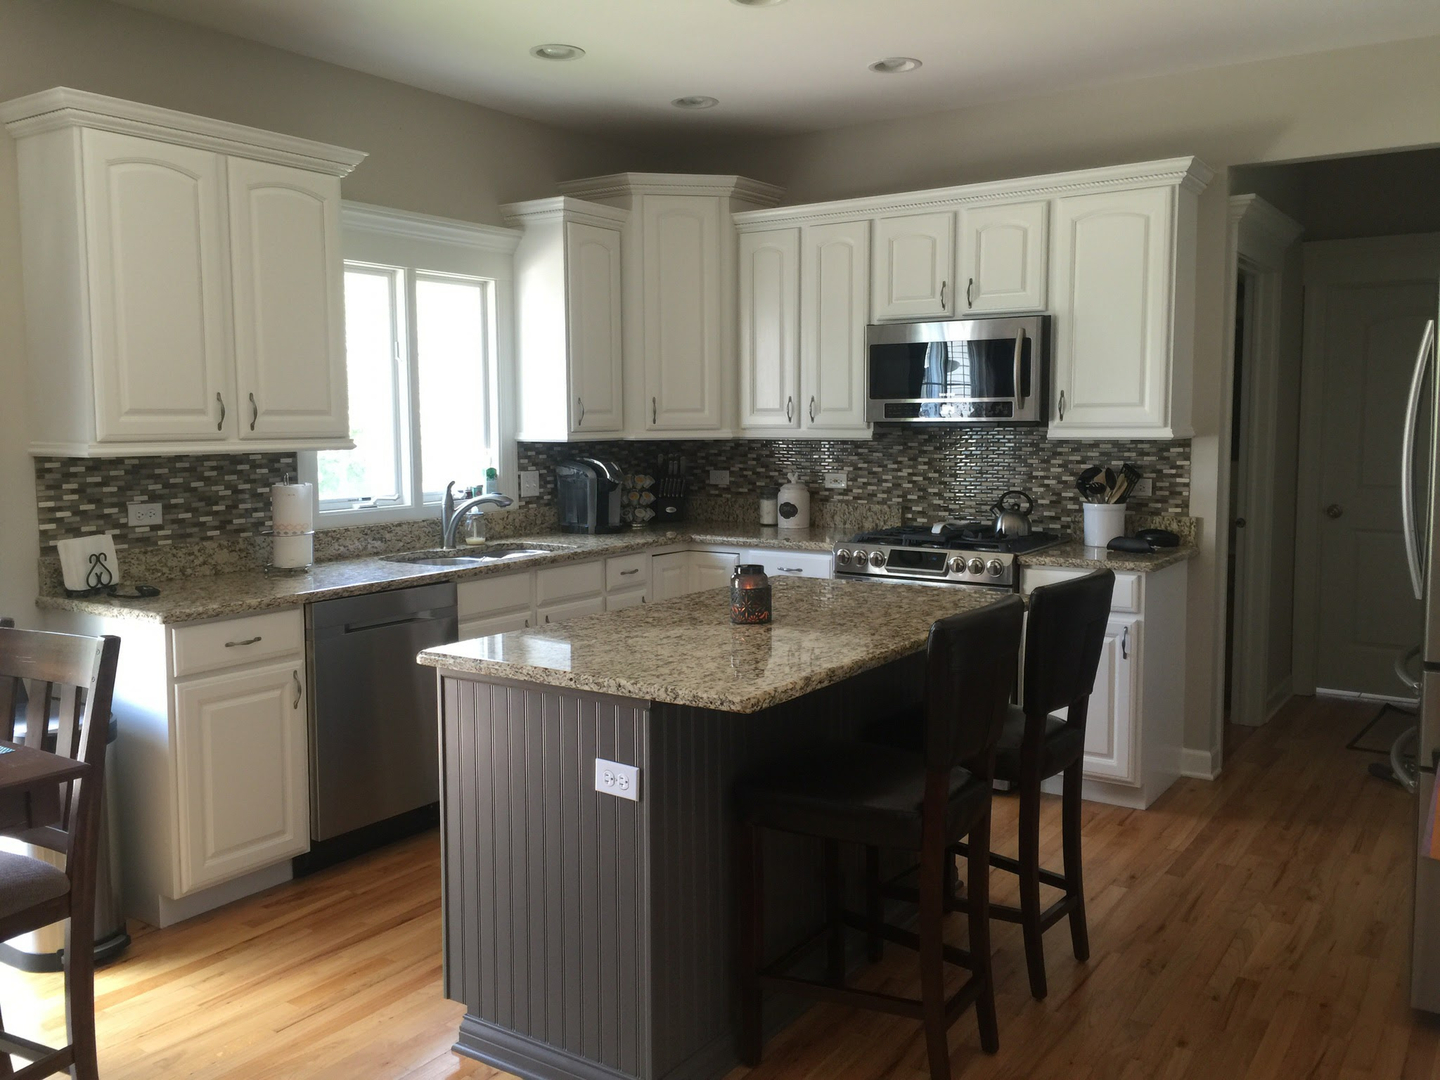 Kitchen cabinets in south elgin il - Kitchen Cabinet Refinishing